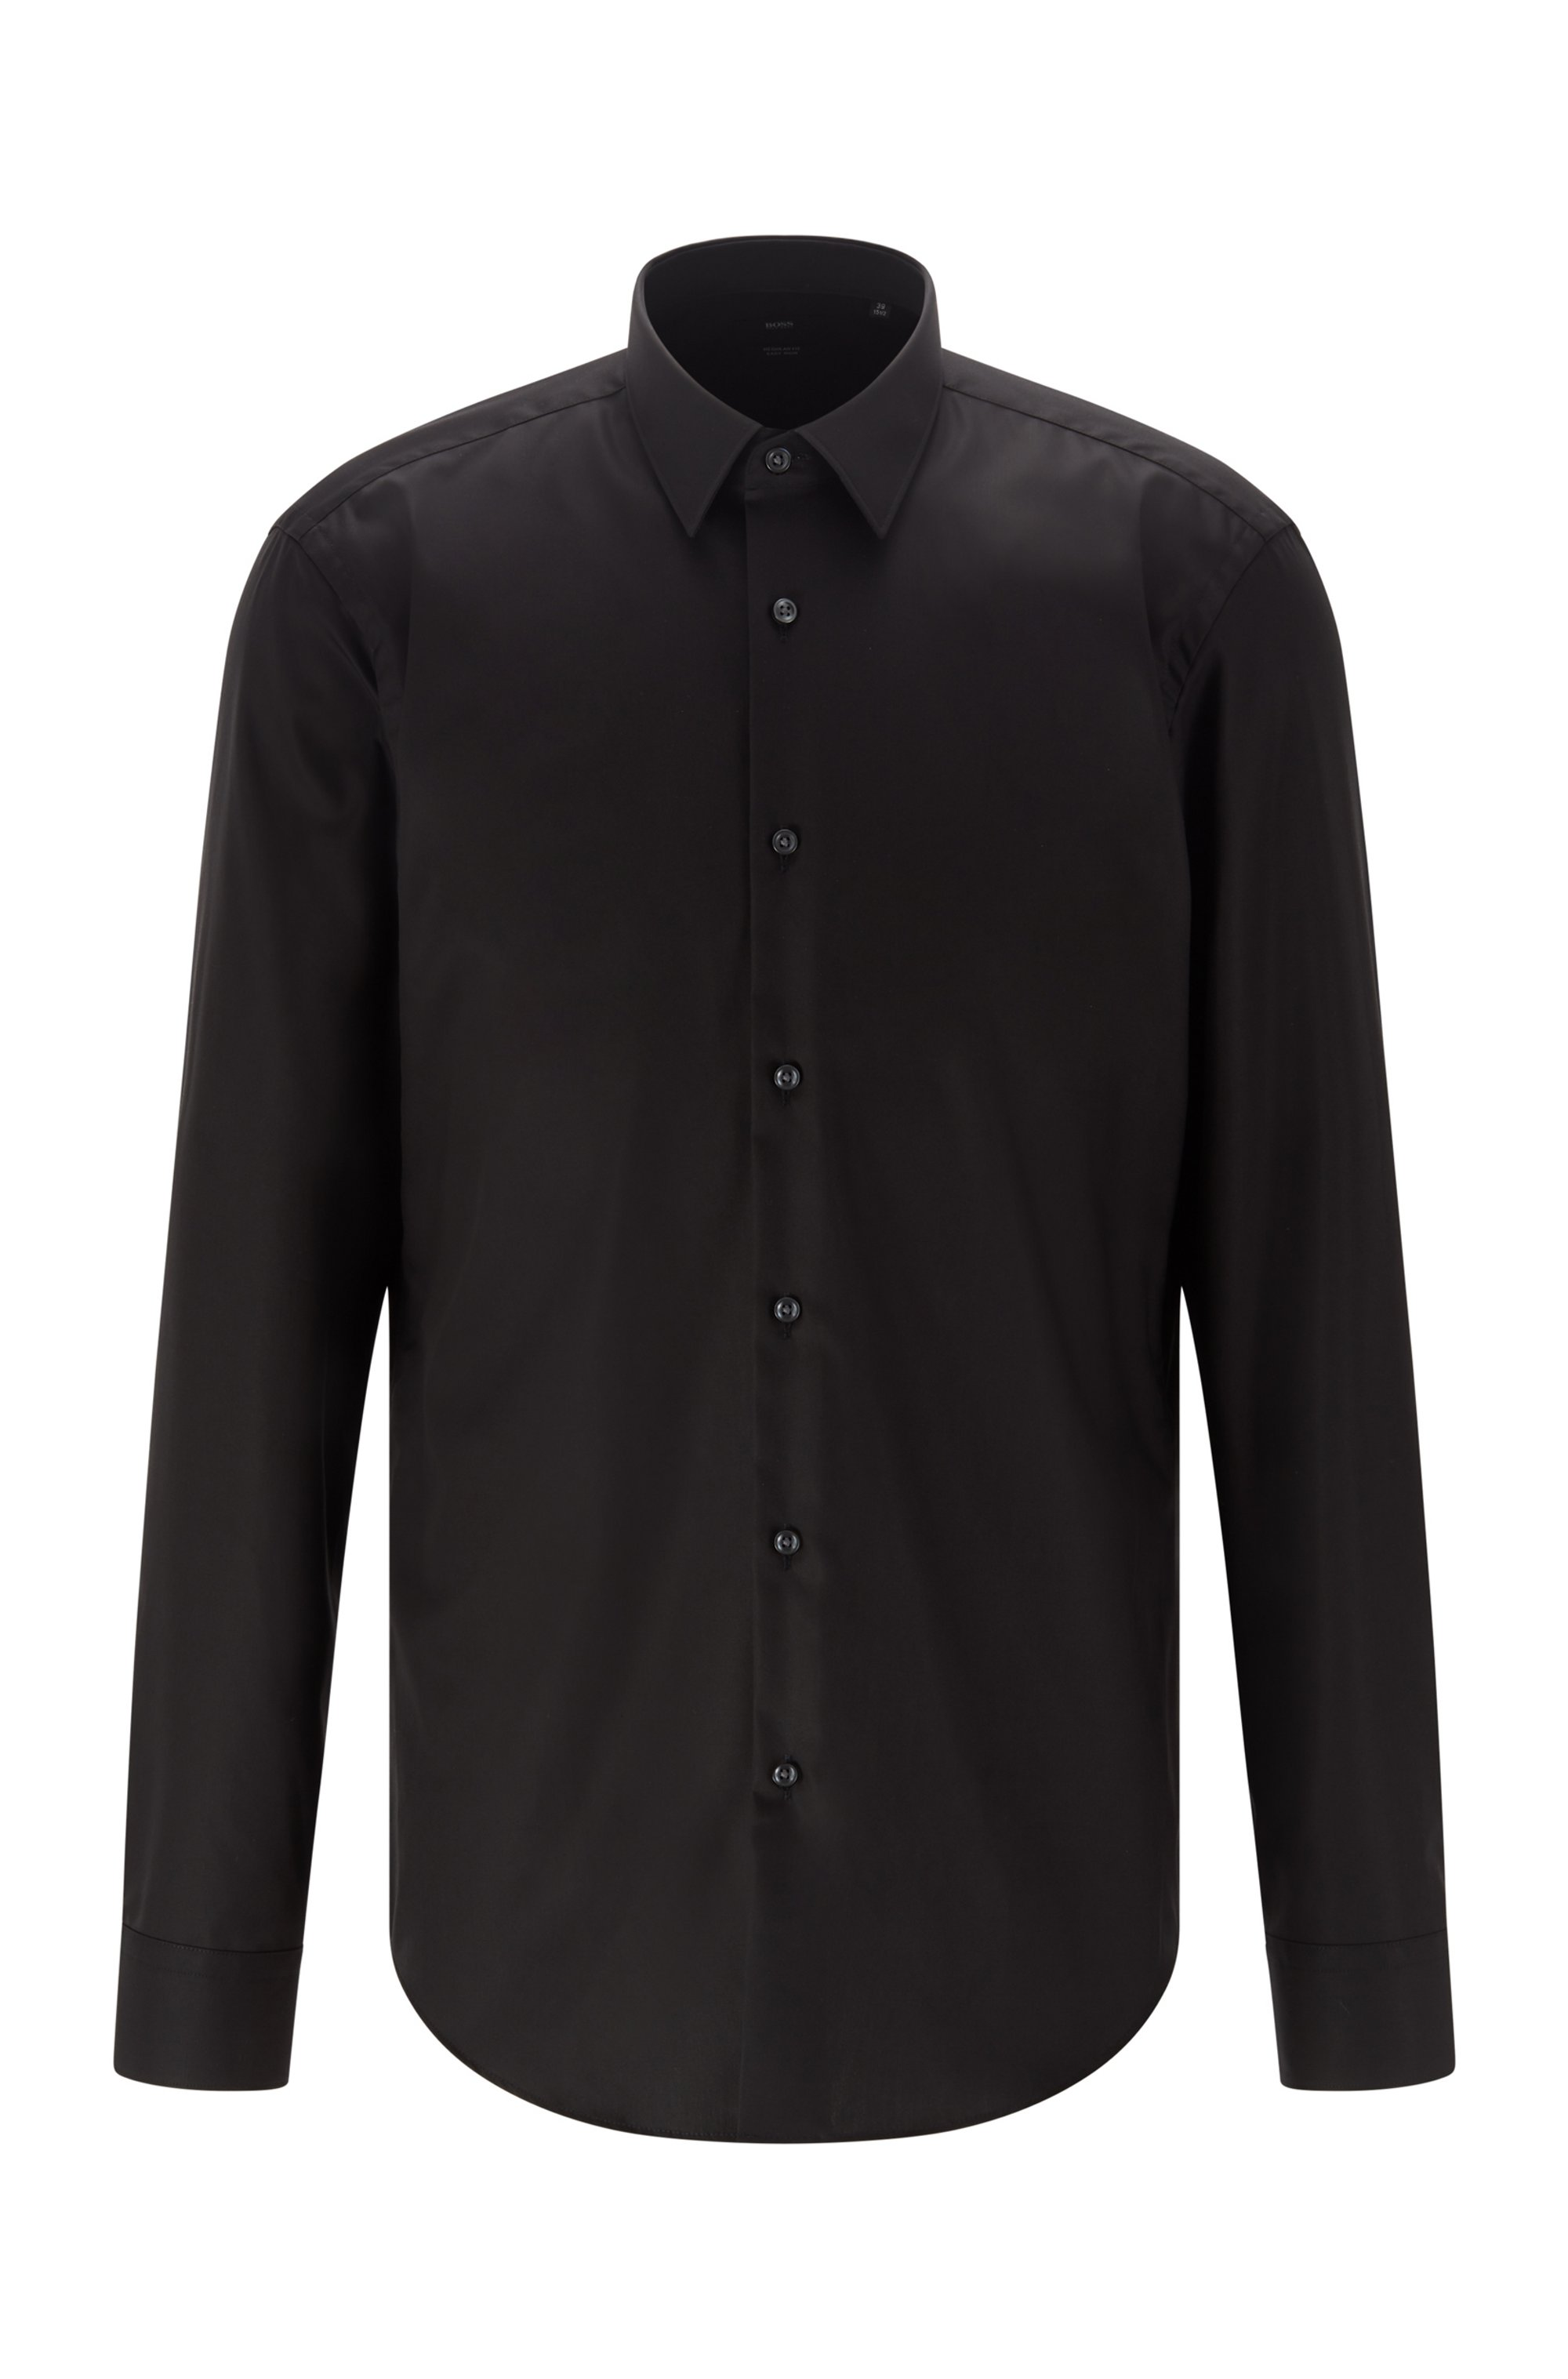 Regular-fit shirt in easy-iron cotton, Black